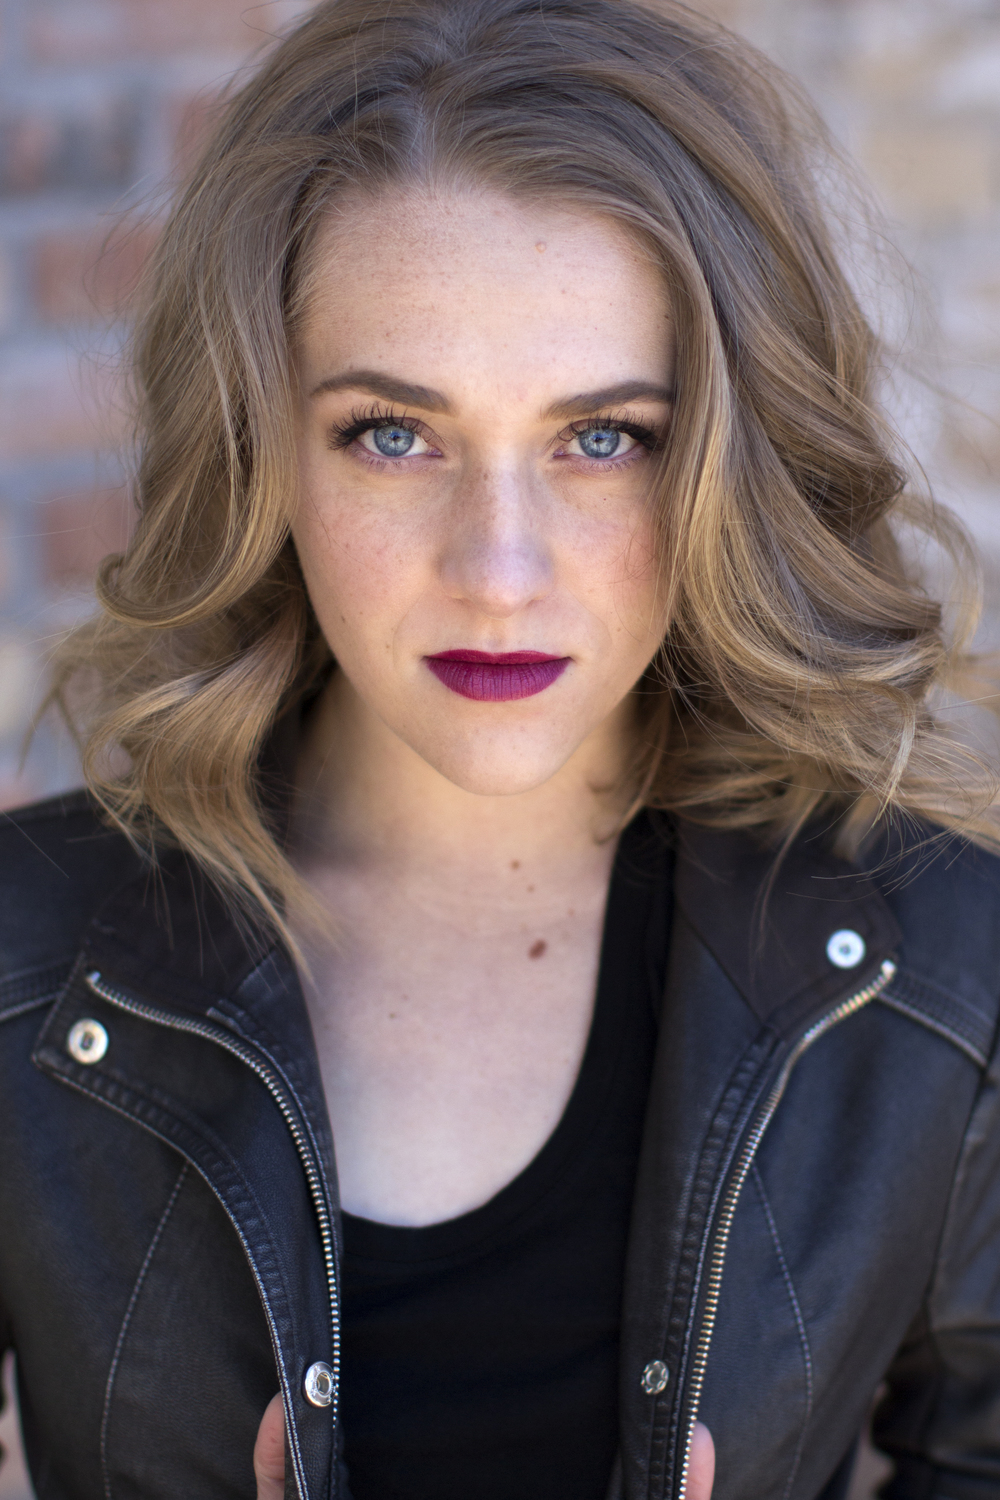 Allie Rae Treharne, who plays Jamie in Secondhand Hearts